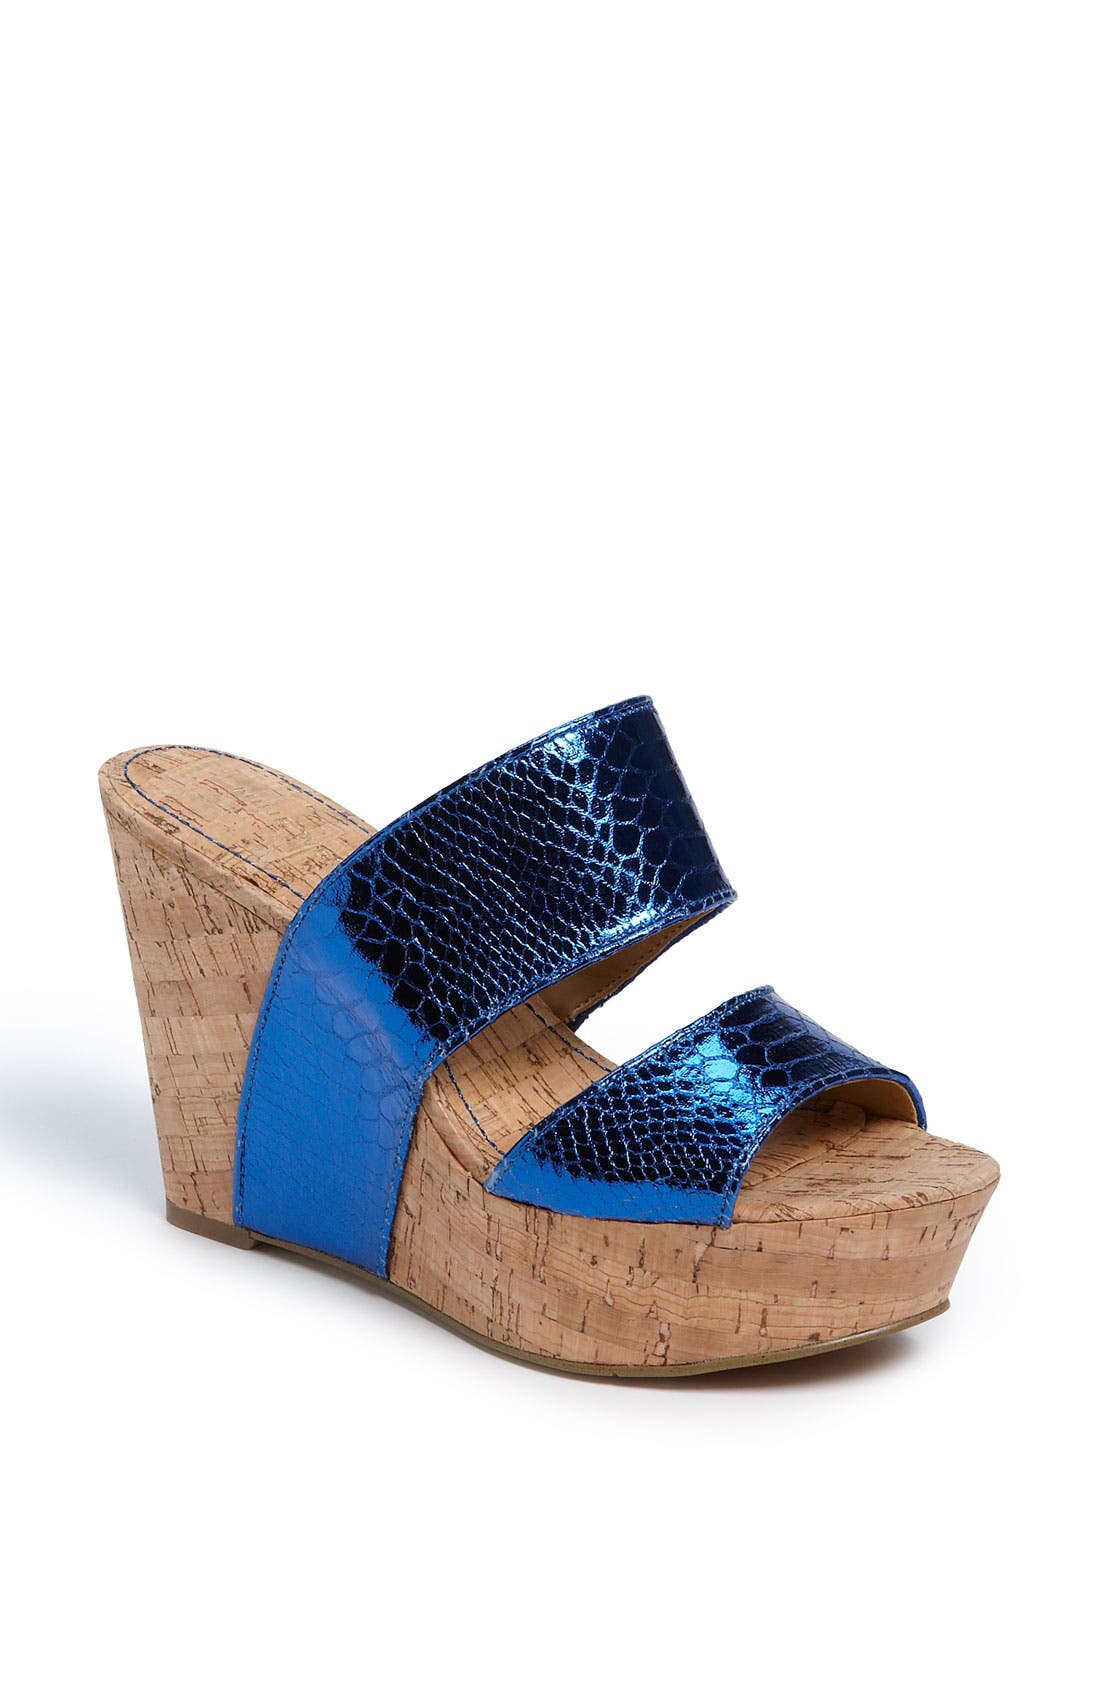 Main Image - Nine West 'Larysa' Wedge Sandal